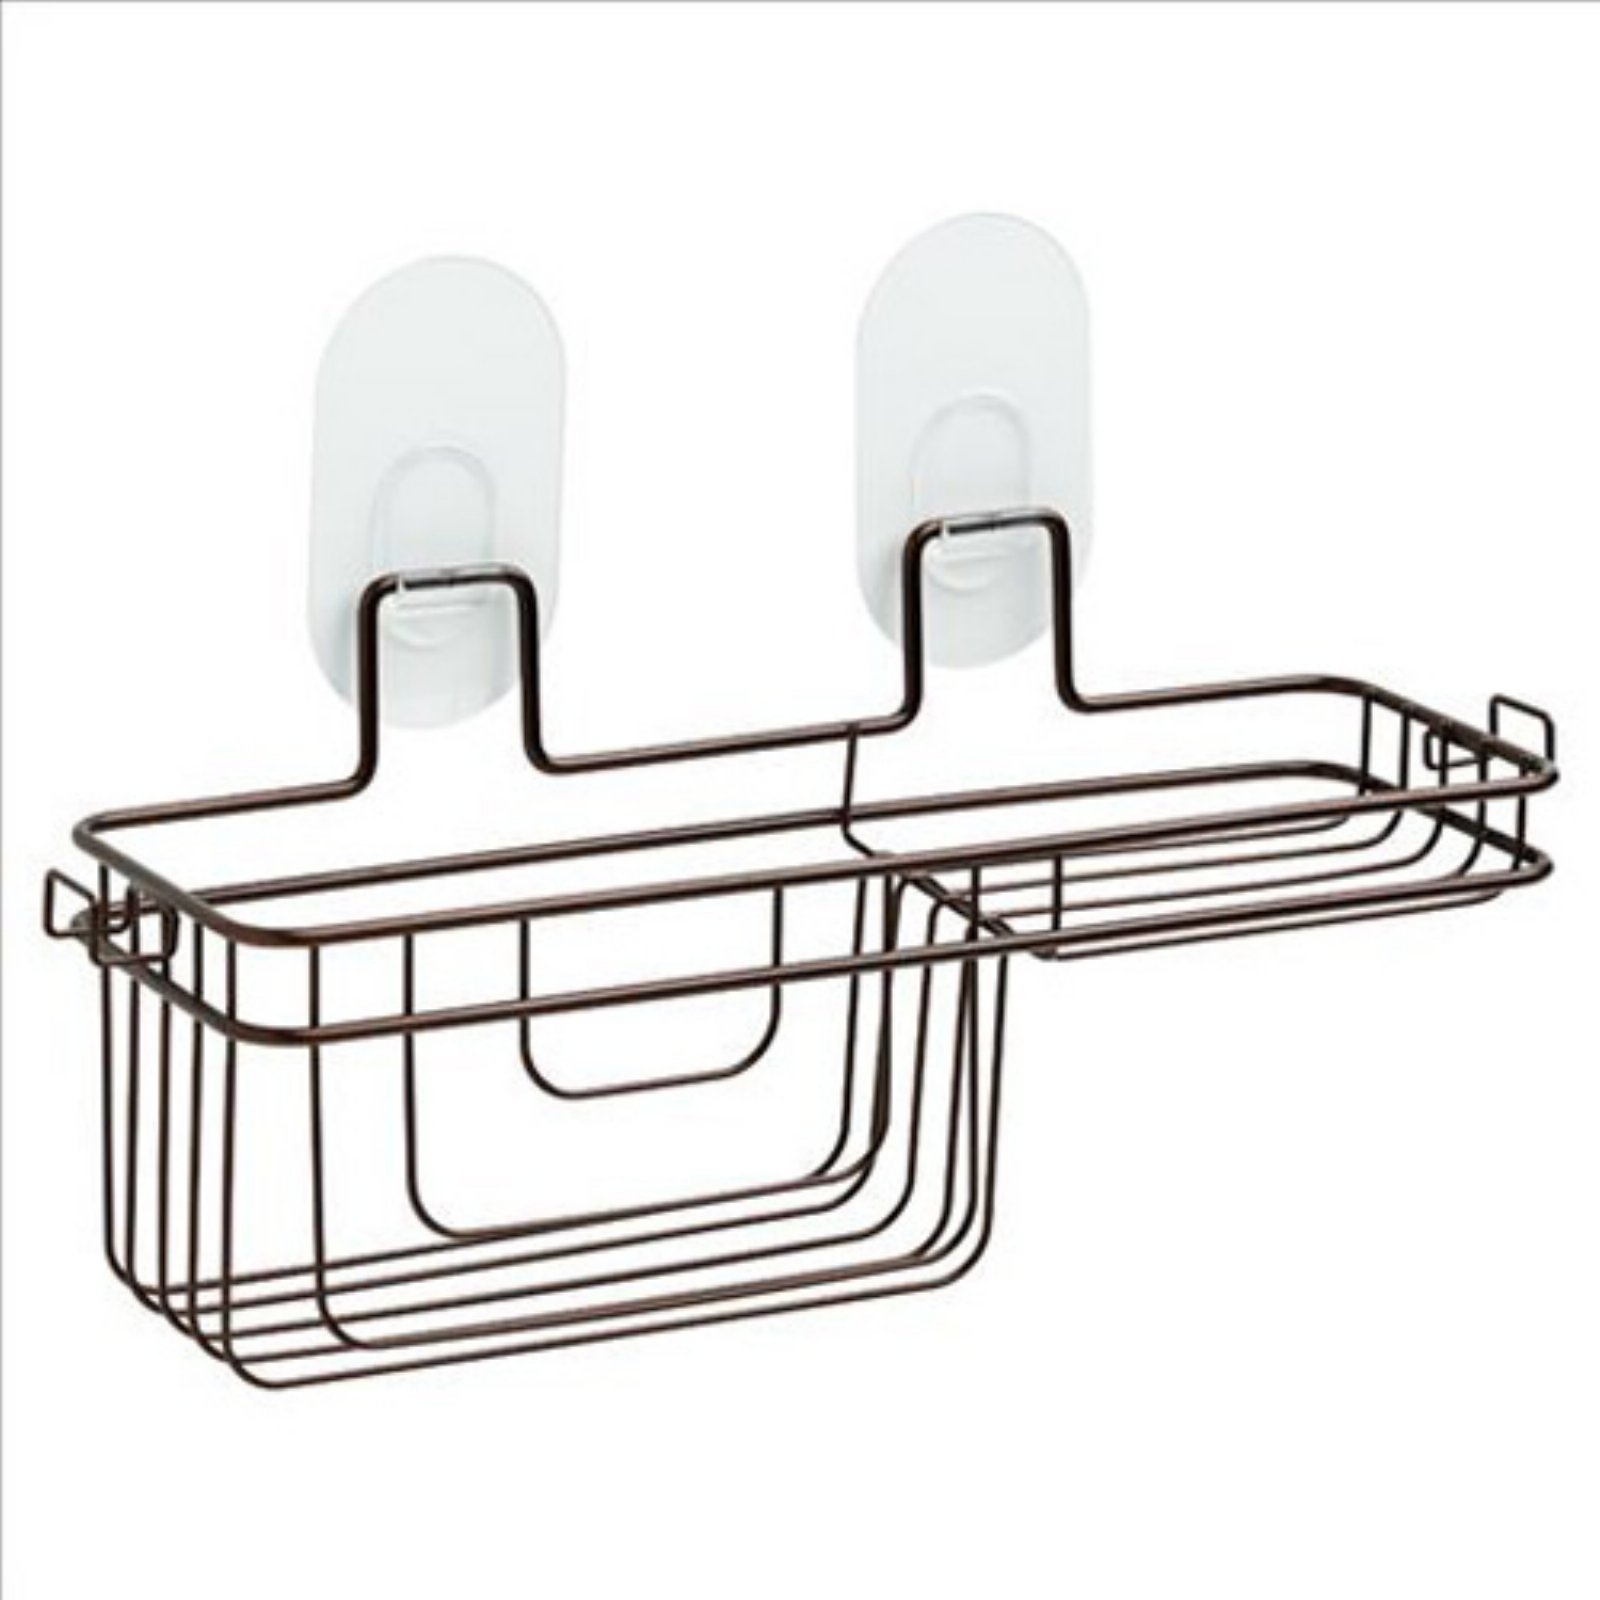 Franklin Brass Two-Tier Basket with Clear IncrediGrip Pads, Available in Multiple Colors